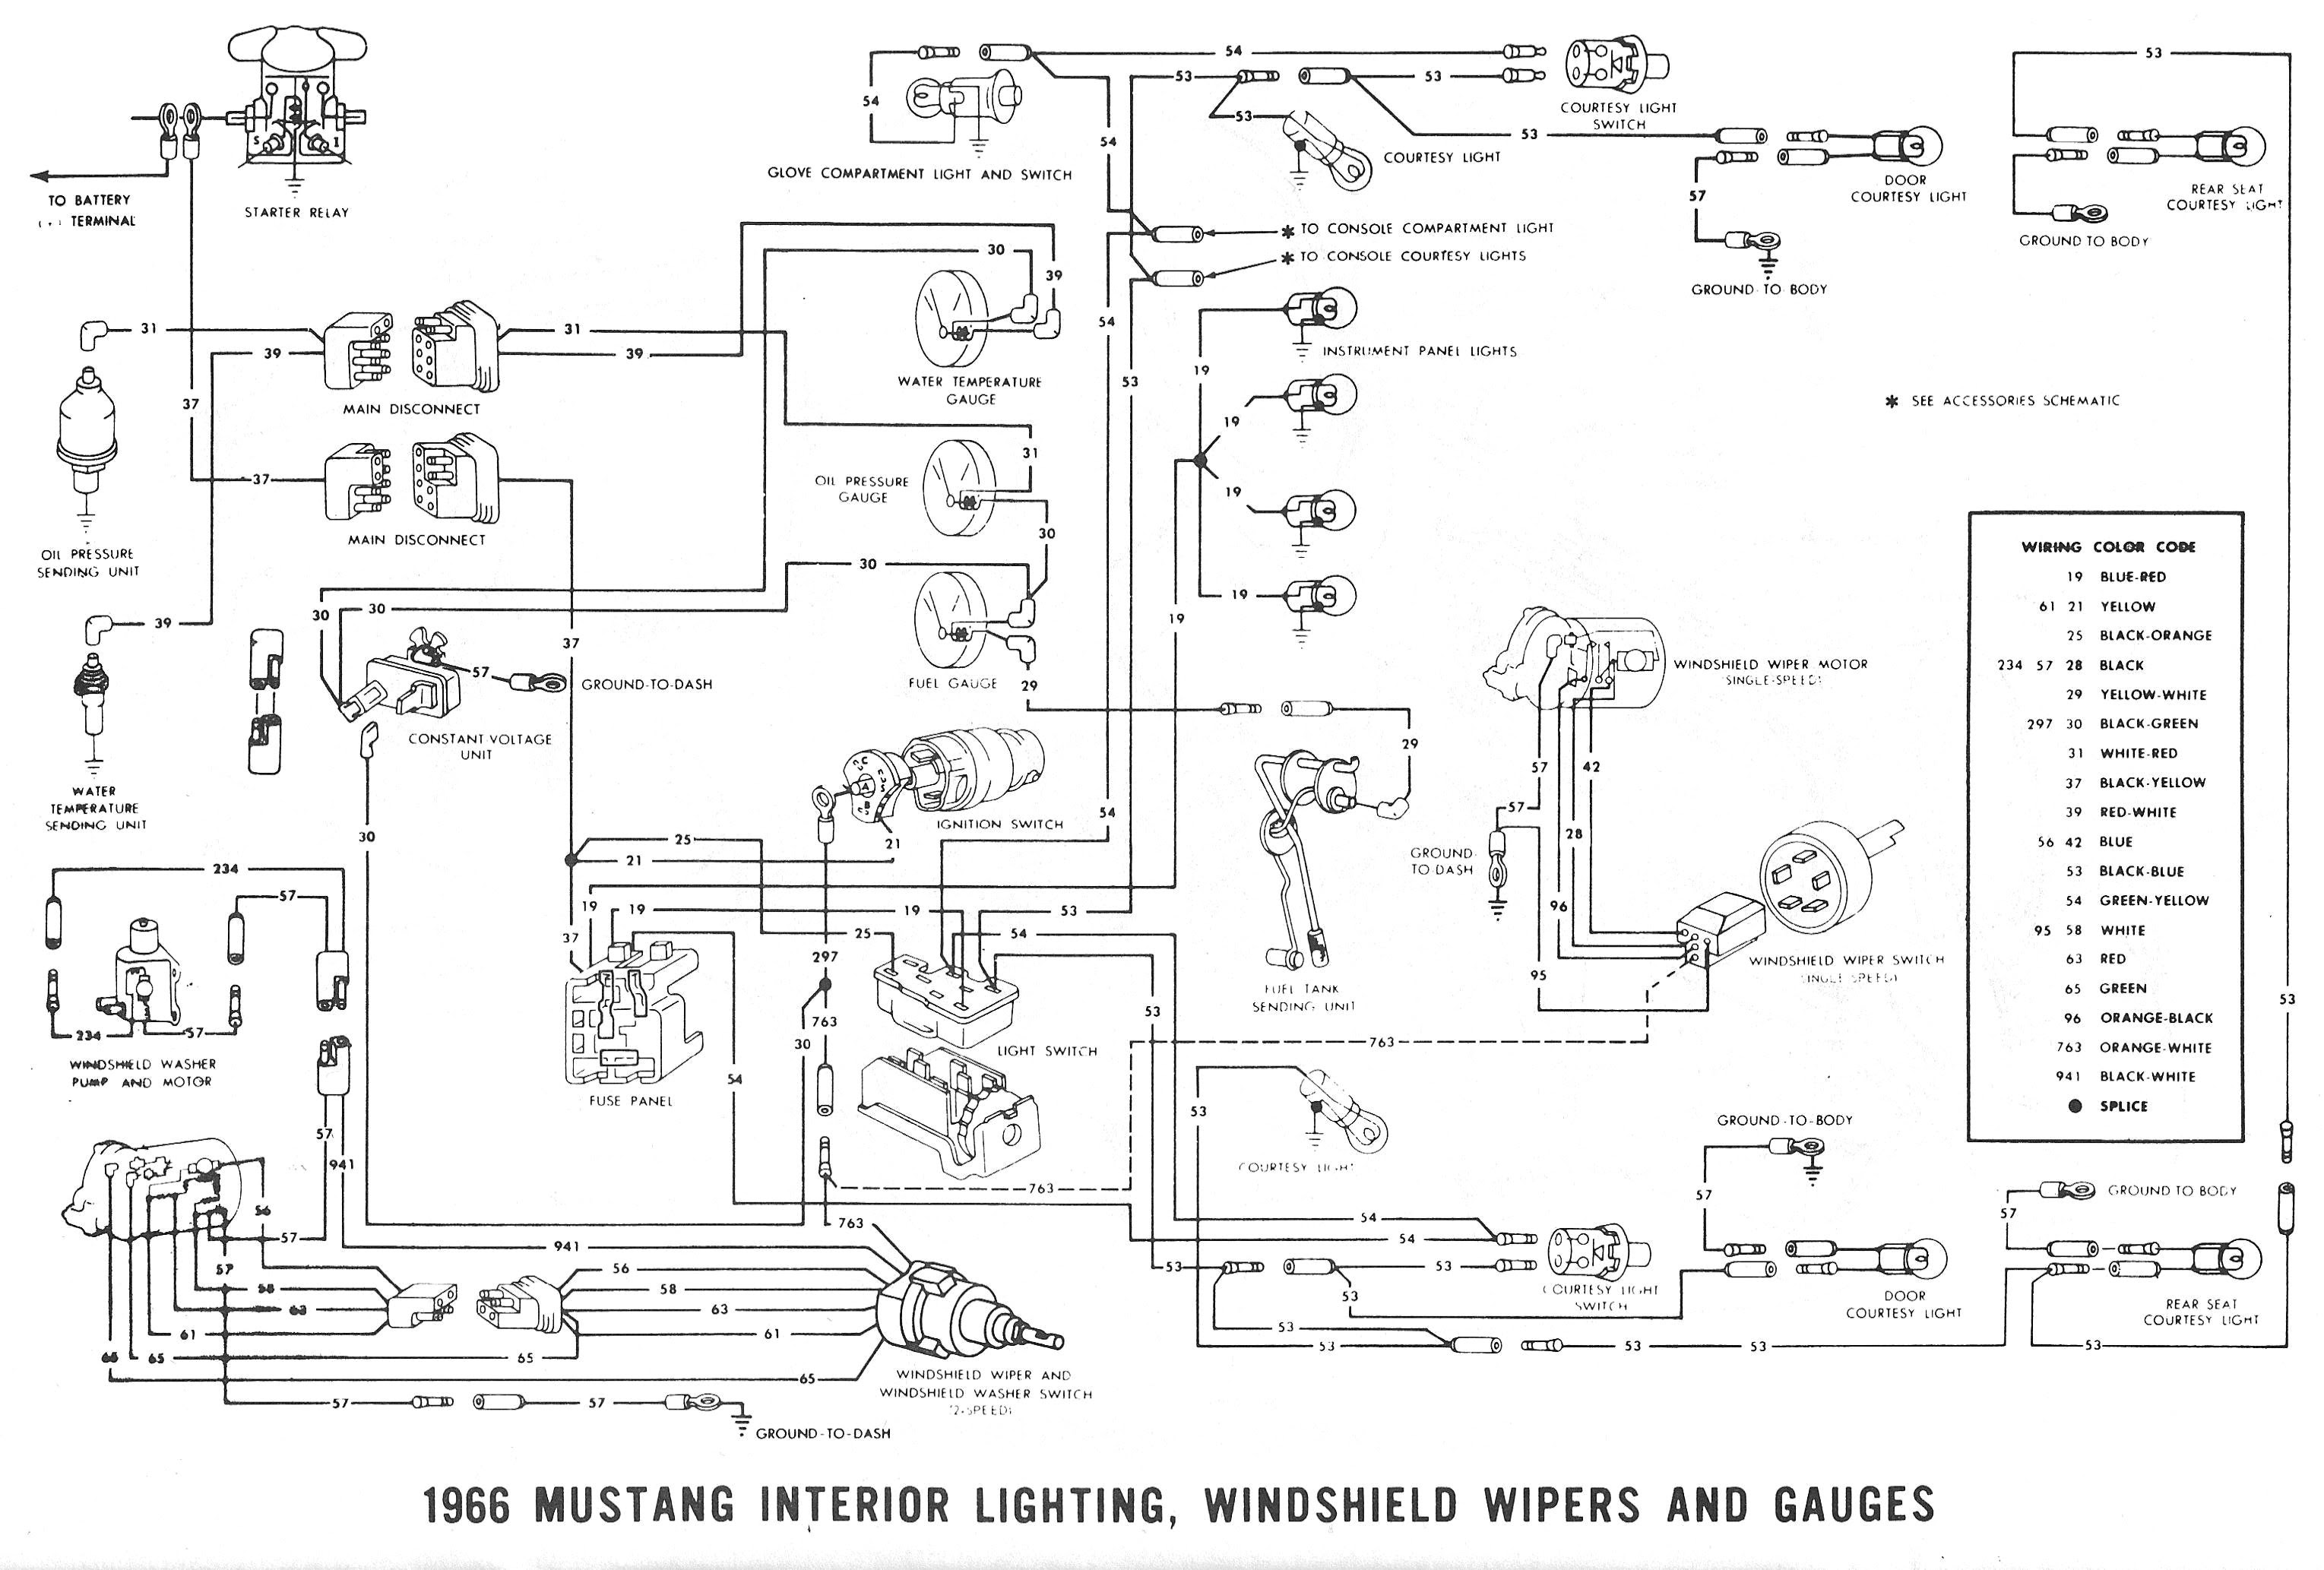 1967 Mustang Accessories Wiring Diagram Wiring Diagrams Regular A Regular A Miglioribanche It